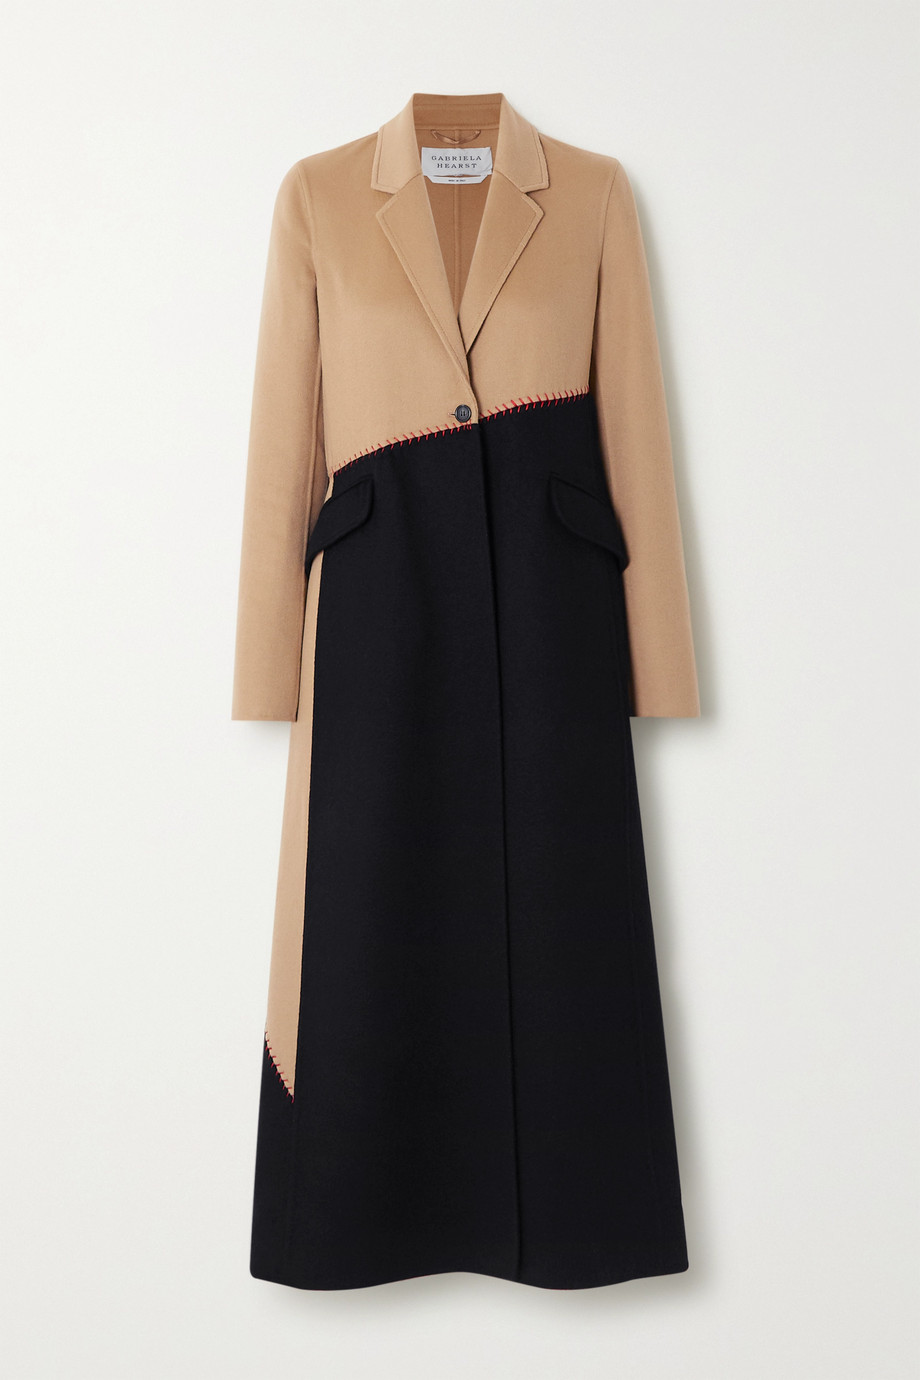 Gabriela Hearst Hamill whipstitched two-tone cashmere coat